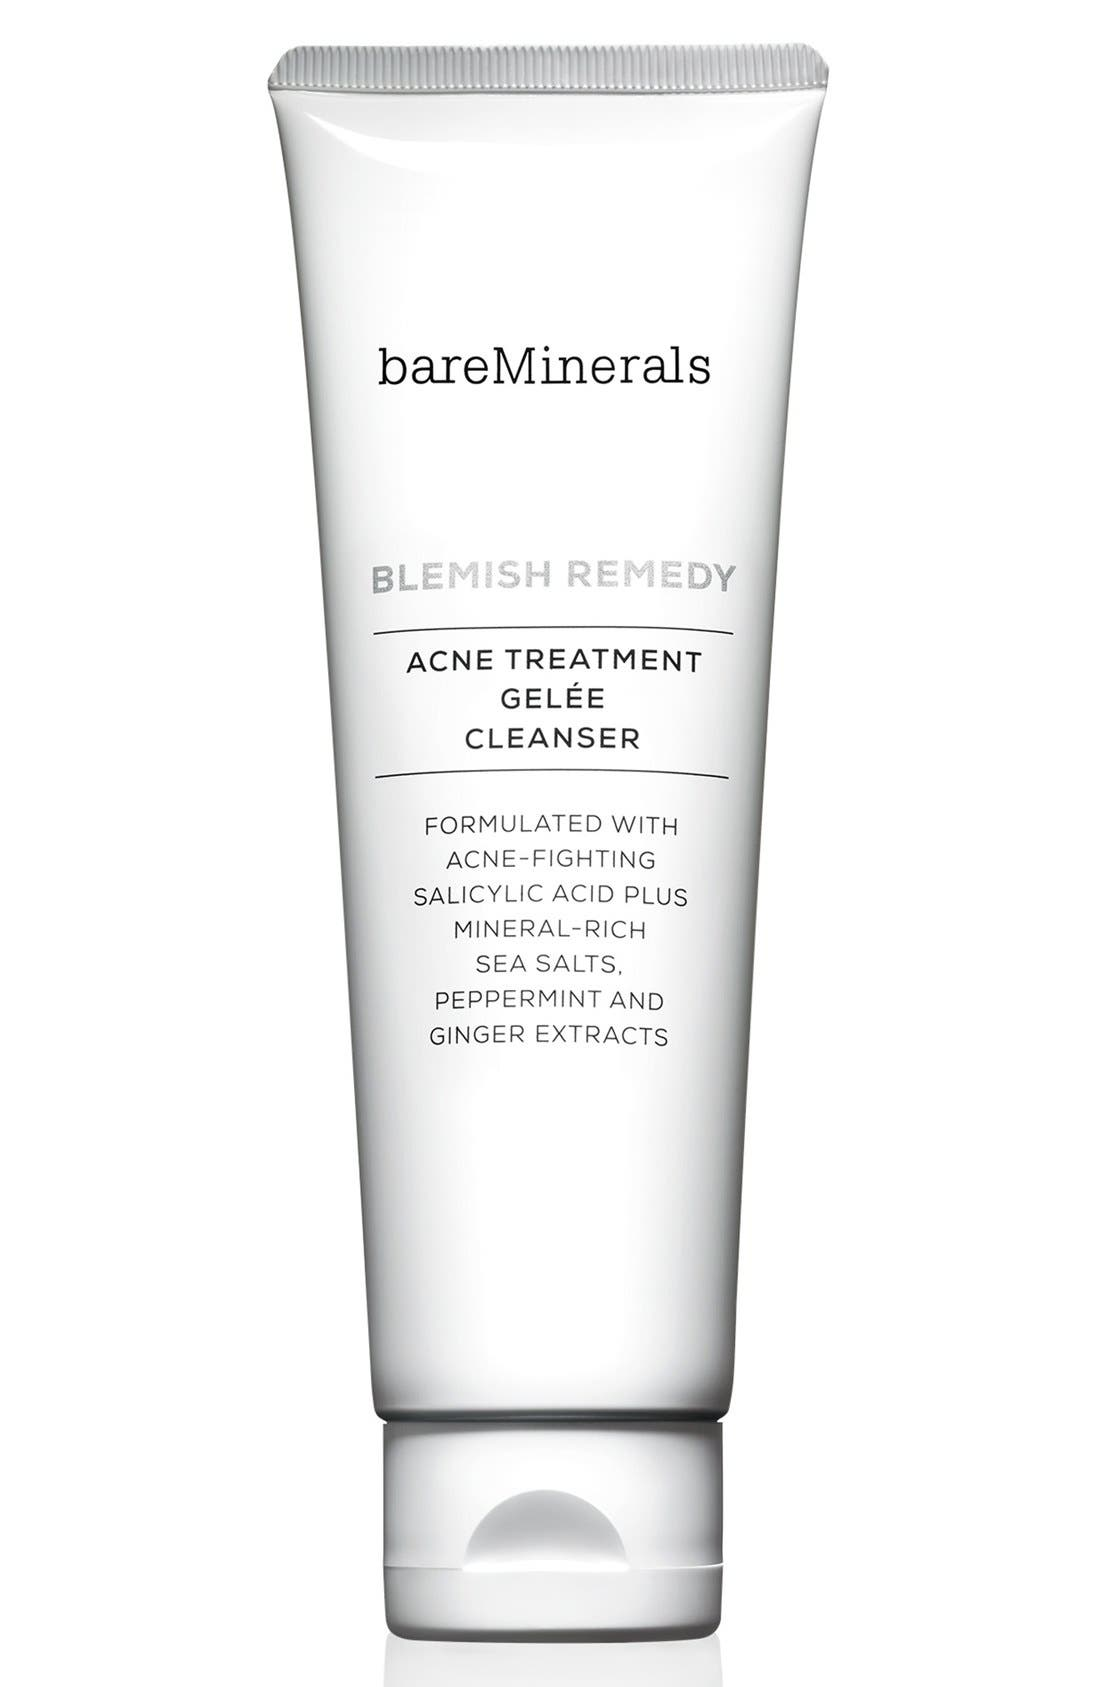 bareMinerals® Blemish Remedy Acne Treatment Gelée Cleanser